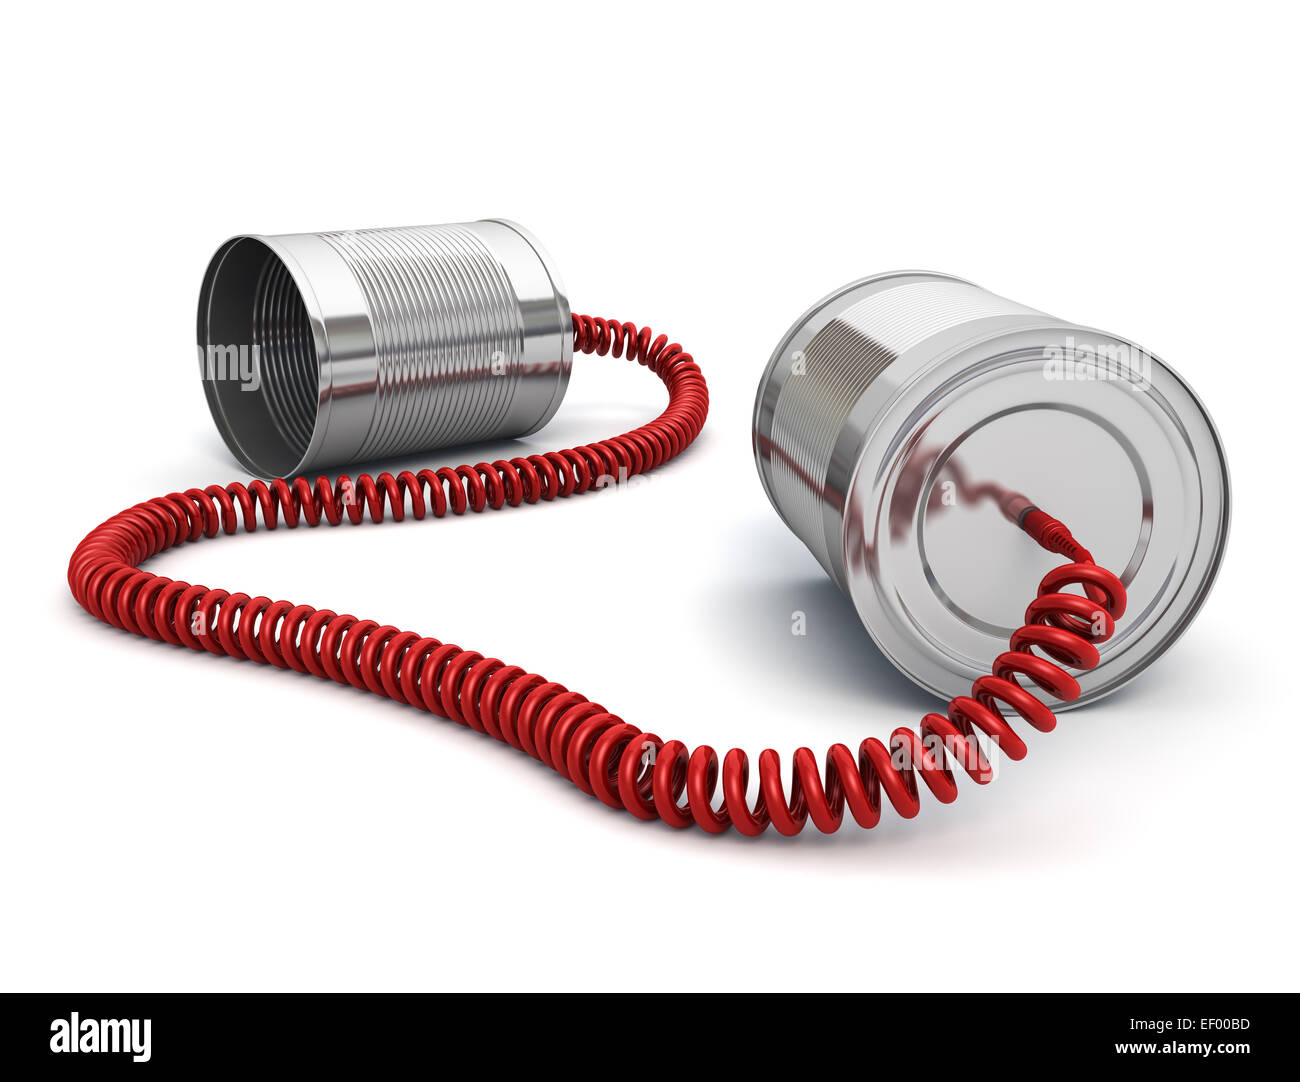 Tin can phone with wired cable - Stock Image